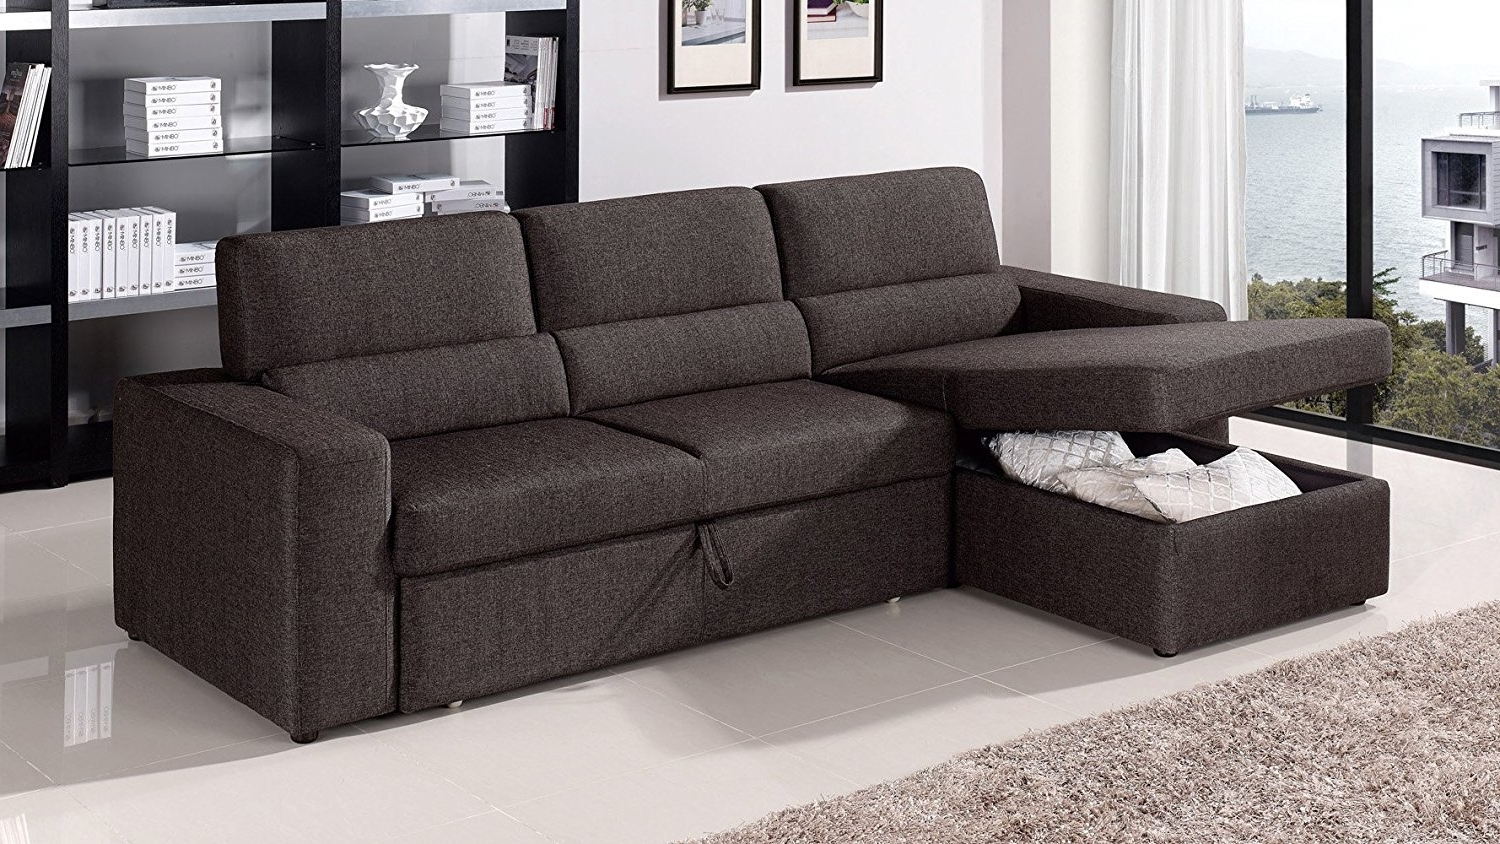 Chaise Sofa Sectionals For Famous Amazon: Black/brown Clubber Sleeper Sectional Sofa – Left (View 2 of 15)